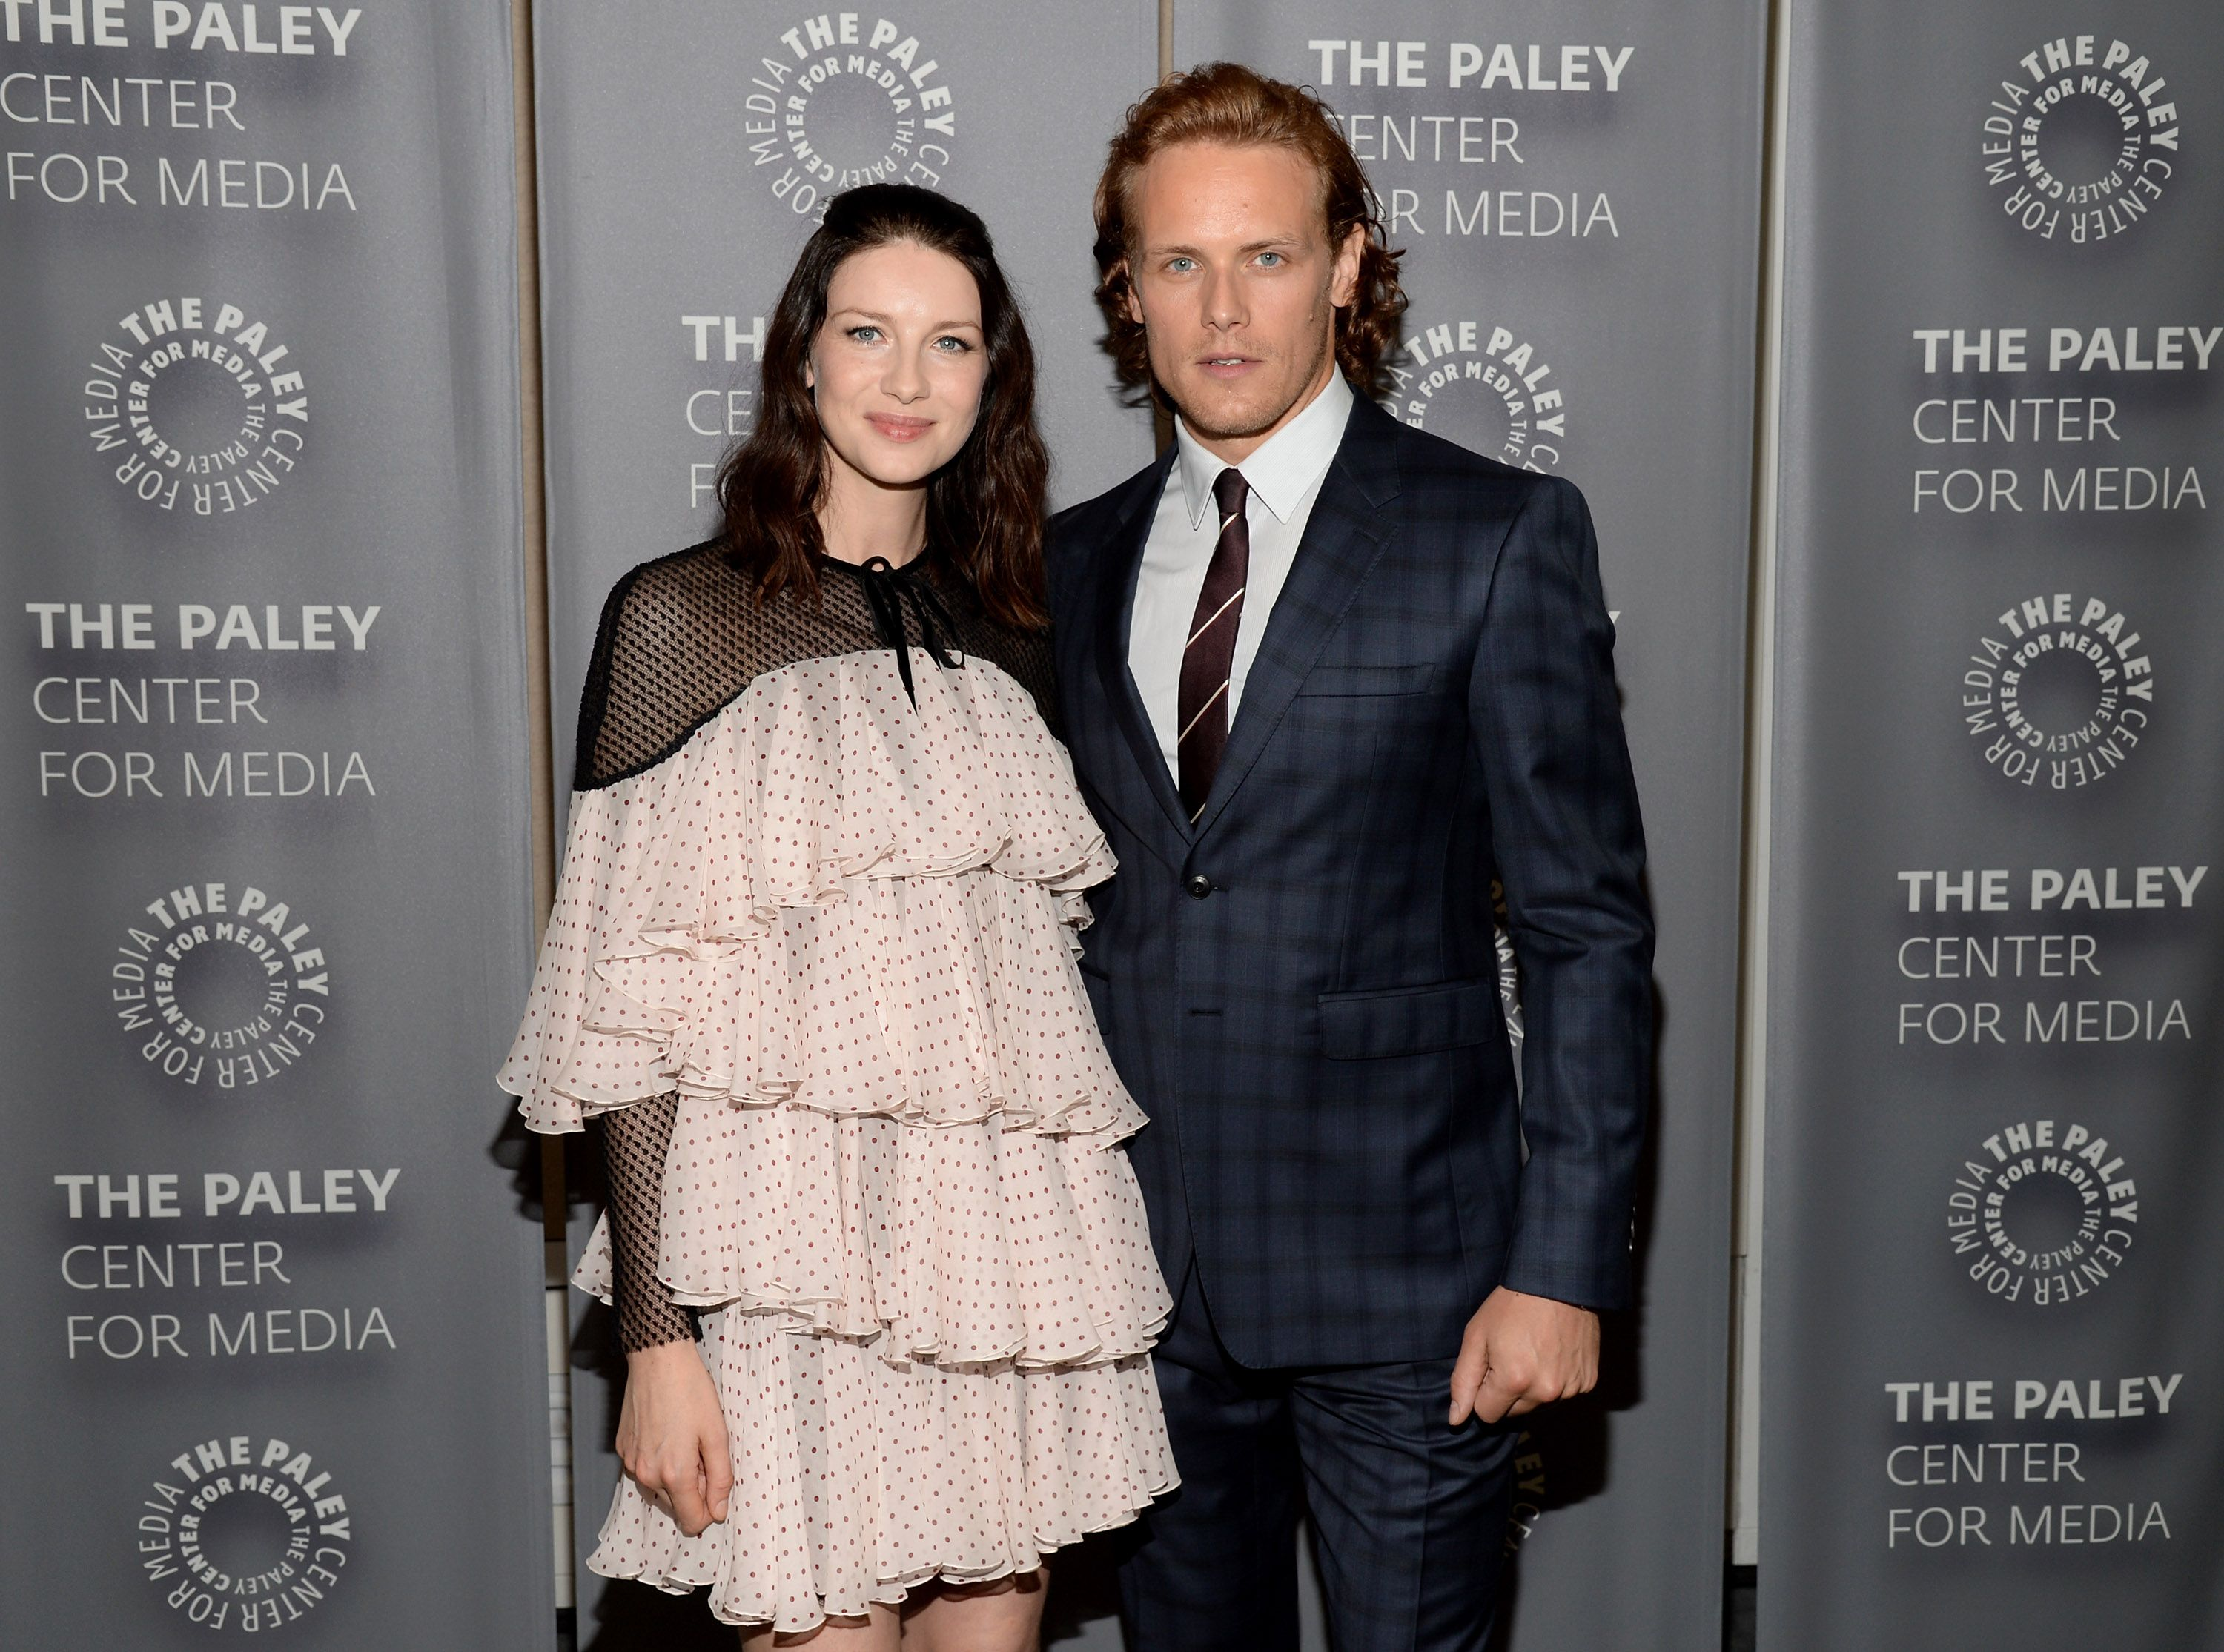 Caitriona Balfe and Sam Heughan on June 6, 2016 in Beverly Hills / Getty Images